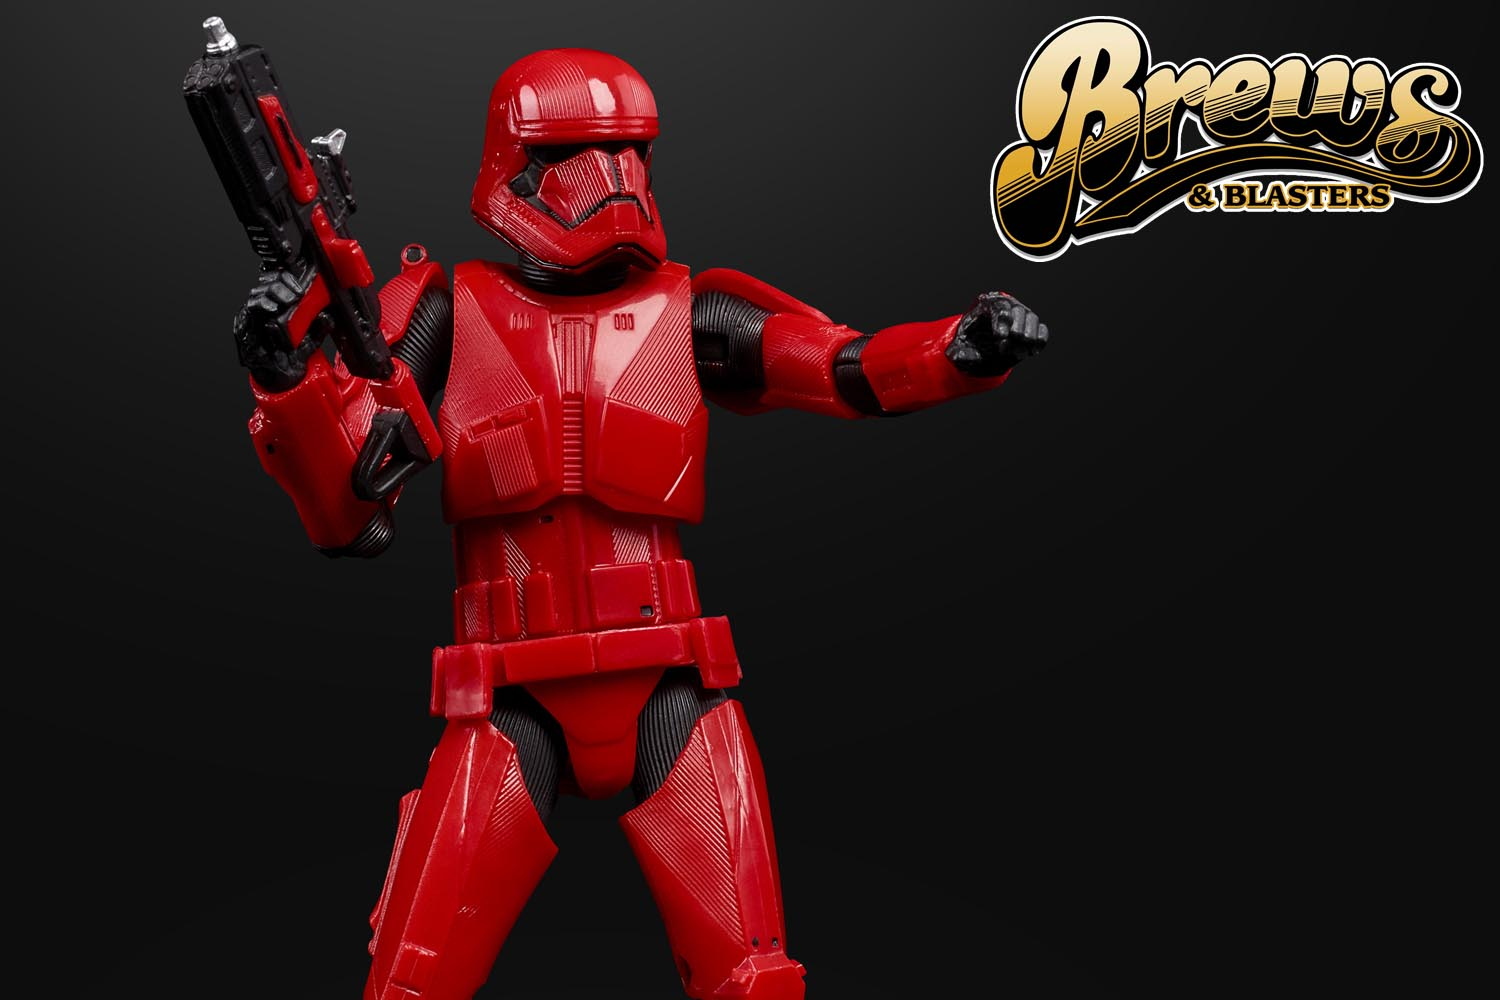 Brews and Blasters 217: I Saw Red—Sith Trooper Revealed!